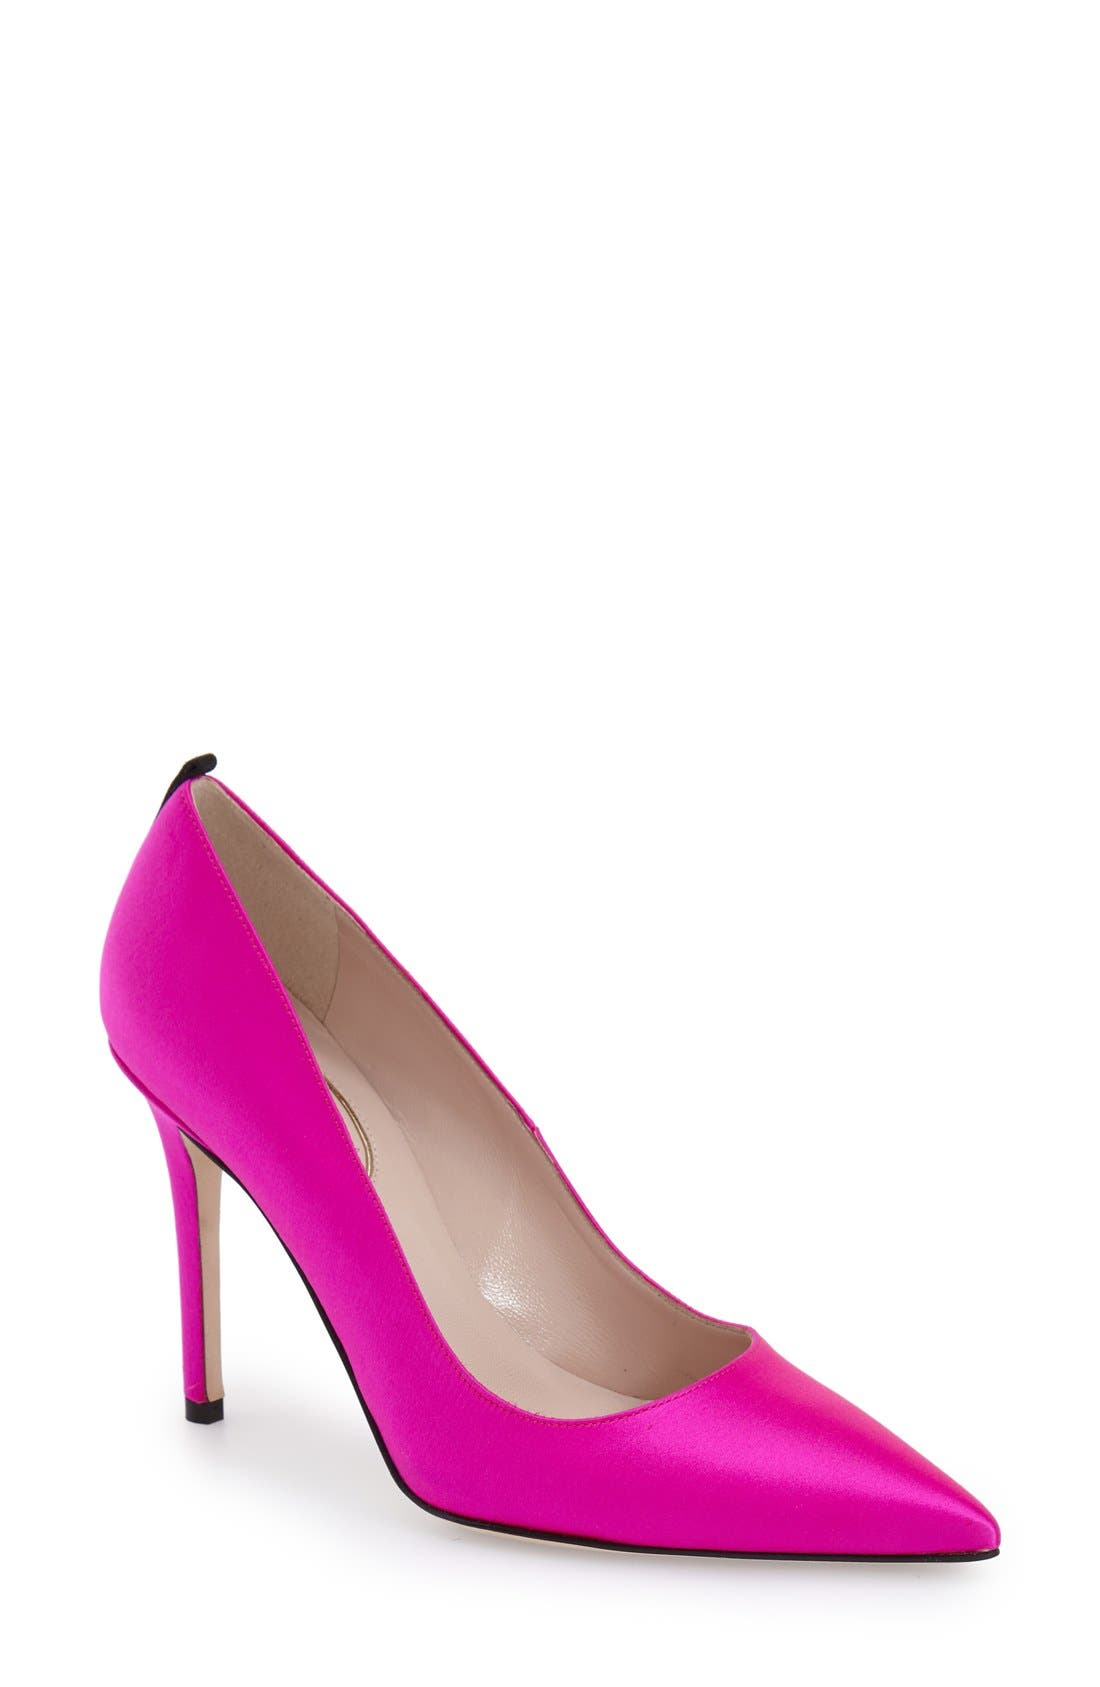 Main Image - SJP by Sarah Jessica Parker 'Fawn' Pointy Toe Pump (Women)